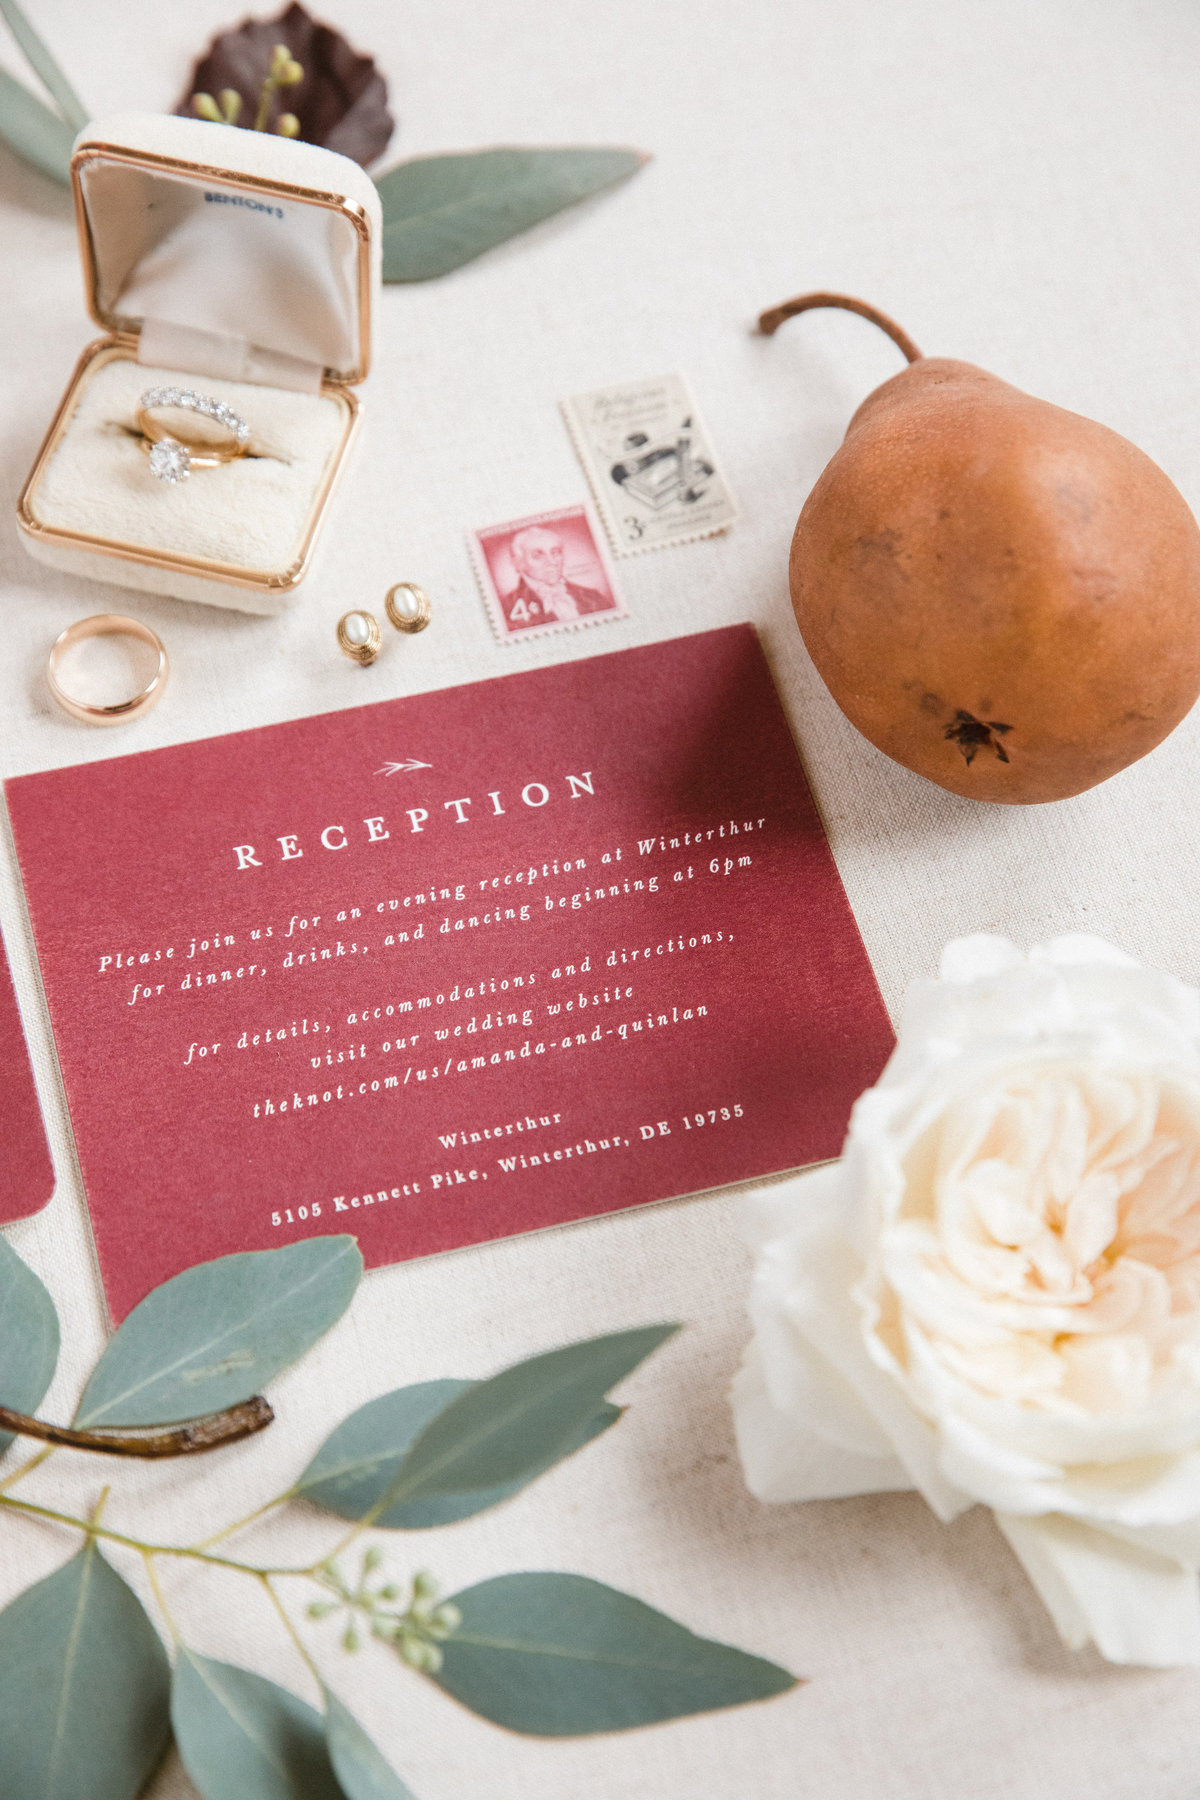 wedding invitation Hotel Dupont Wilmington Delaware